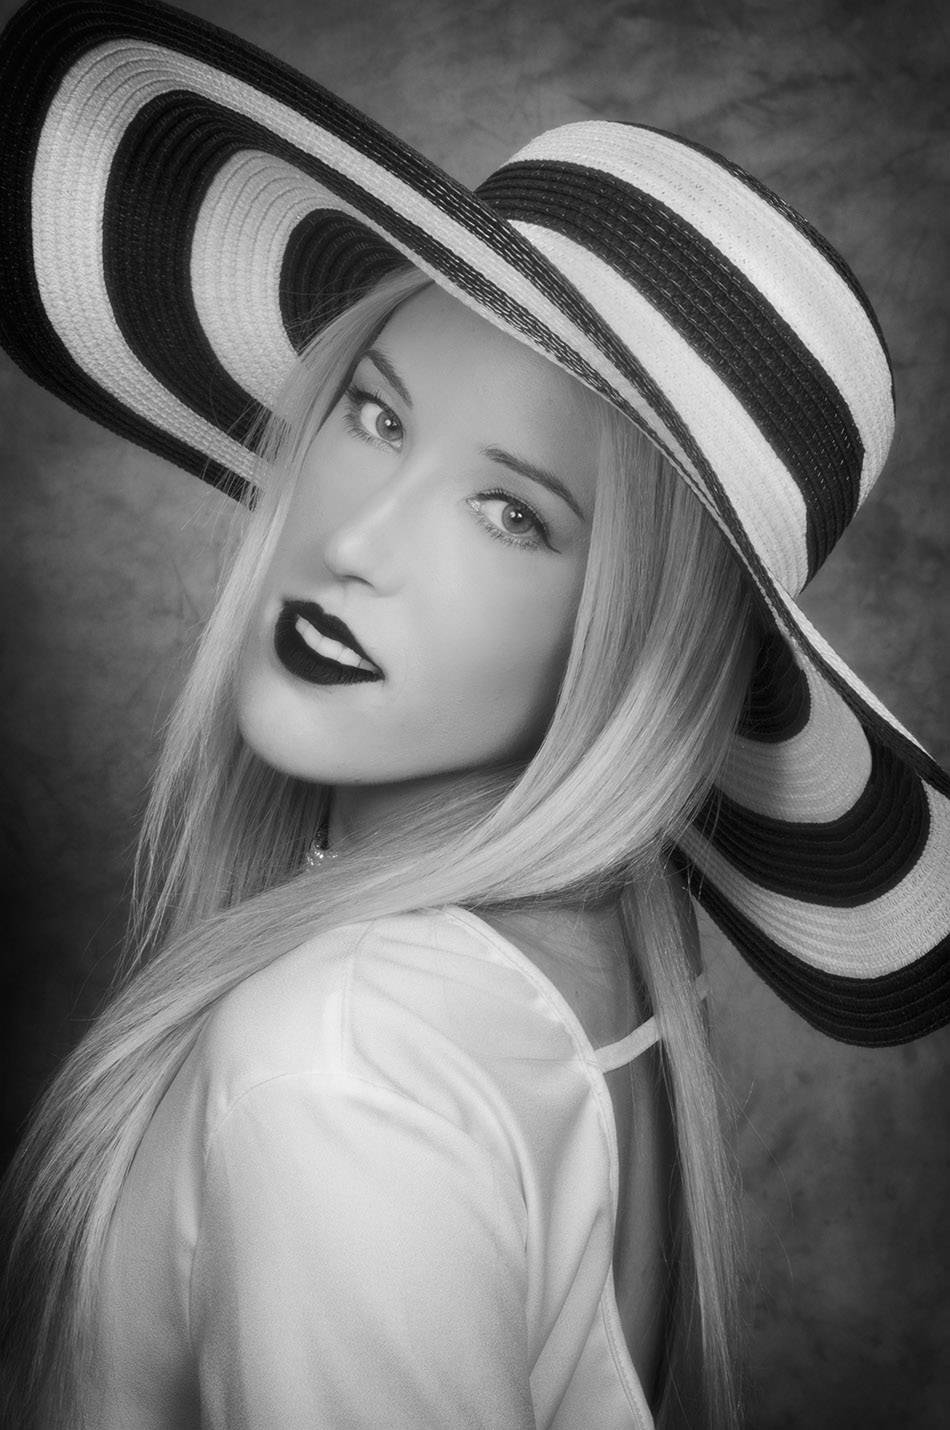 Amy, hat photo with beautiful smile portrait